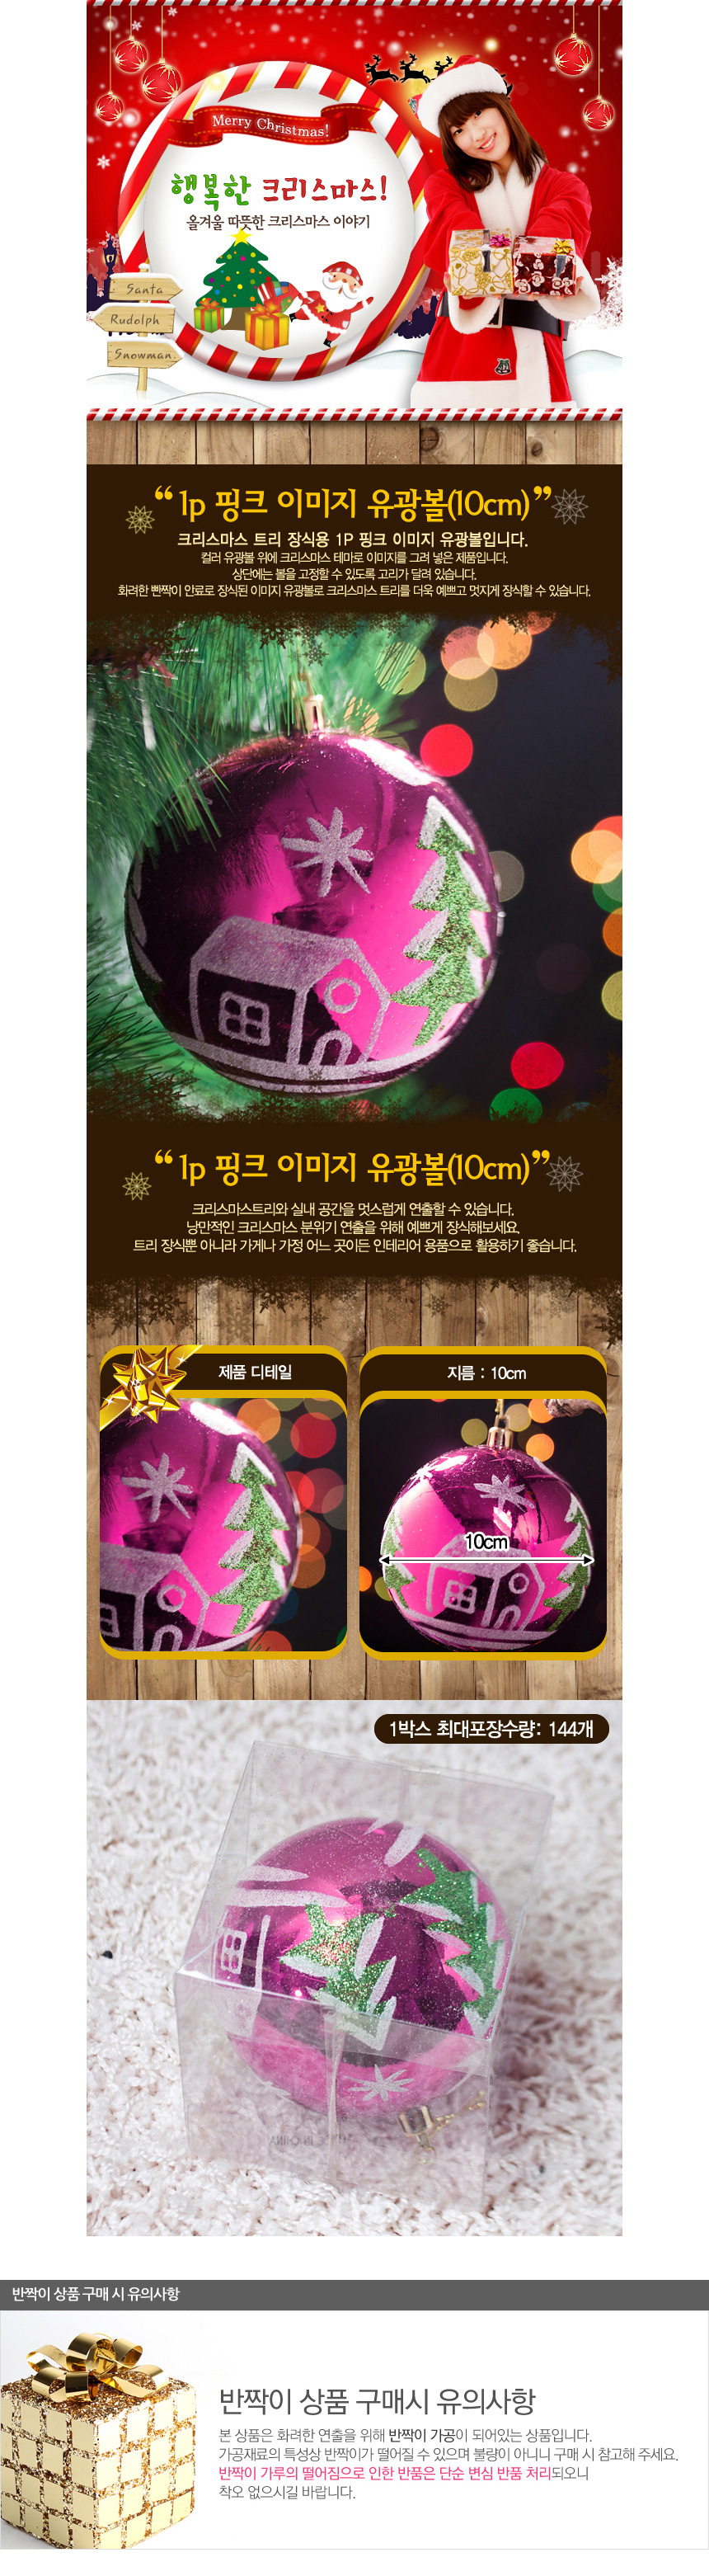 [ WINEQOK ] Christmas Goods / Pink Image Glossy Ball 1p